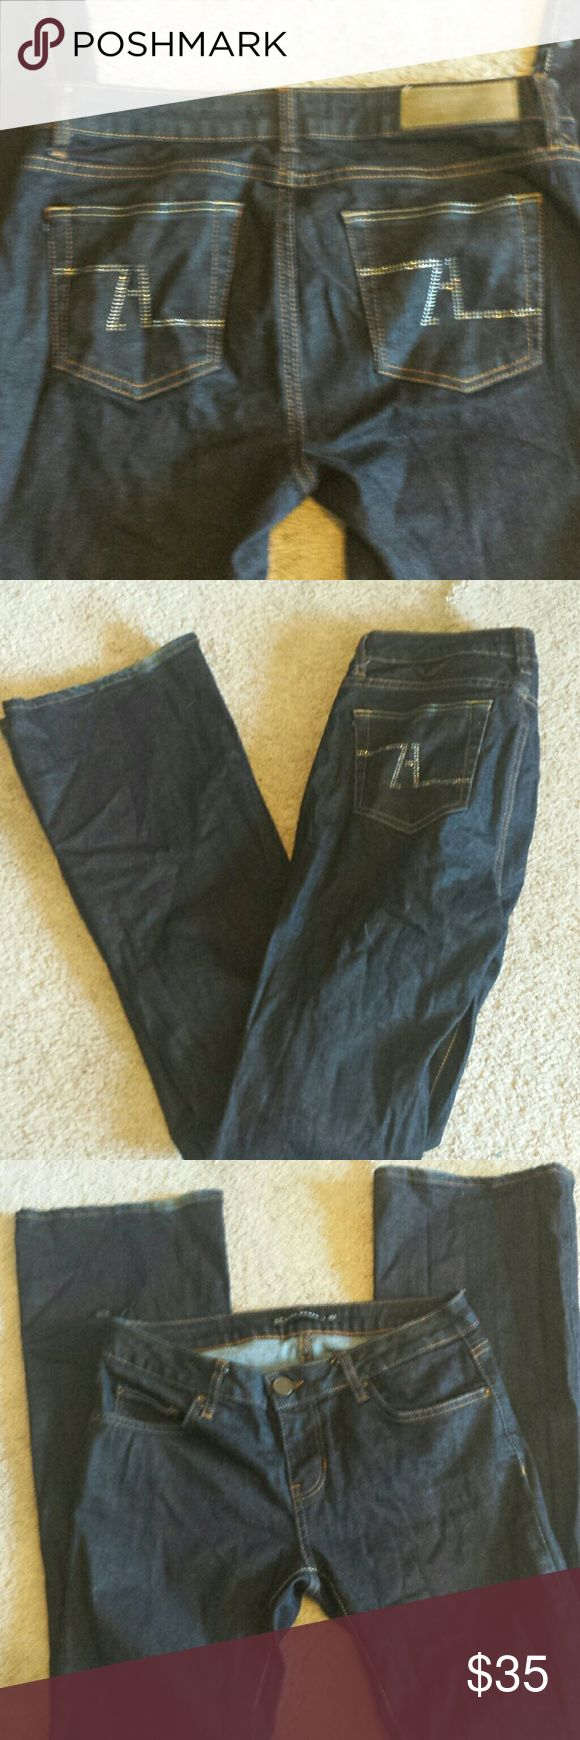 Womens Zara jeans bootcut size 6 diamond pocket Women size 6 Zara Jeans. Diamond design on back pockets.  Bootcut style.  These are great looking jeans . Bottom right by hem has discoloration and scratches (purchased like this) but does not show because by hemline but because of this huge discount. Zara Jeans